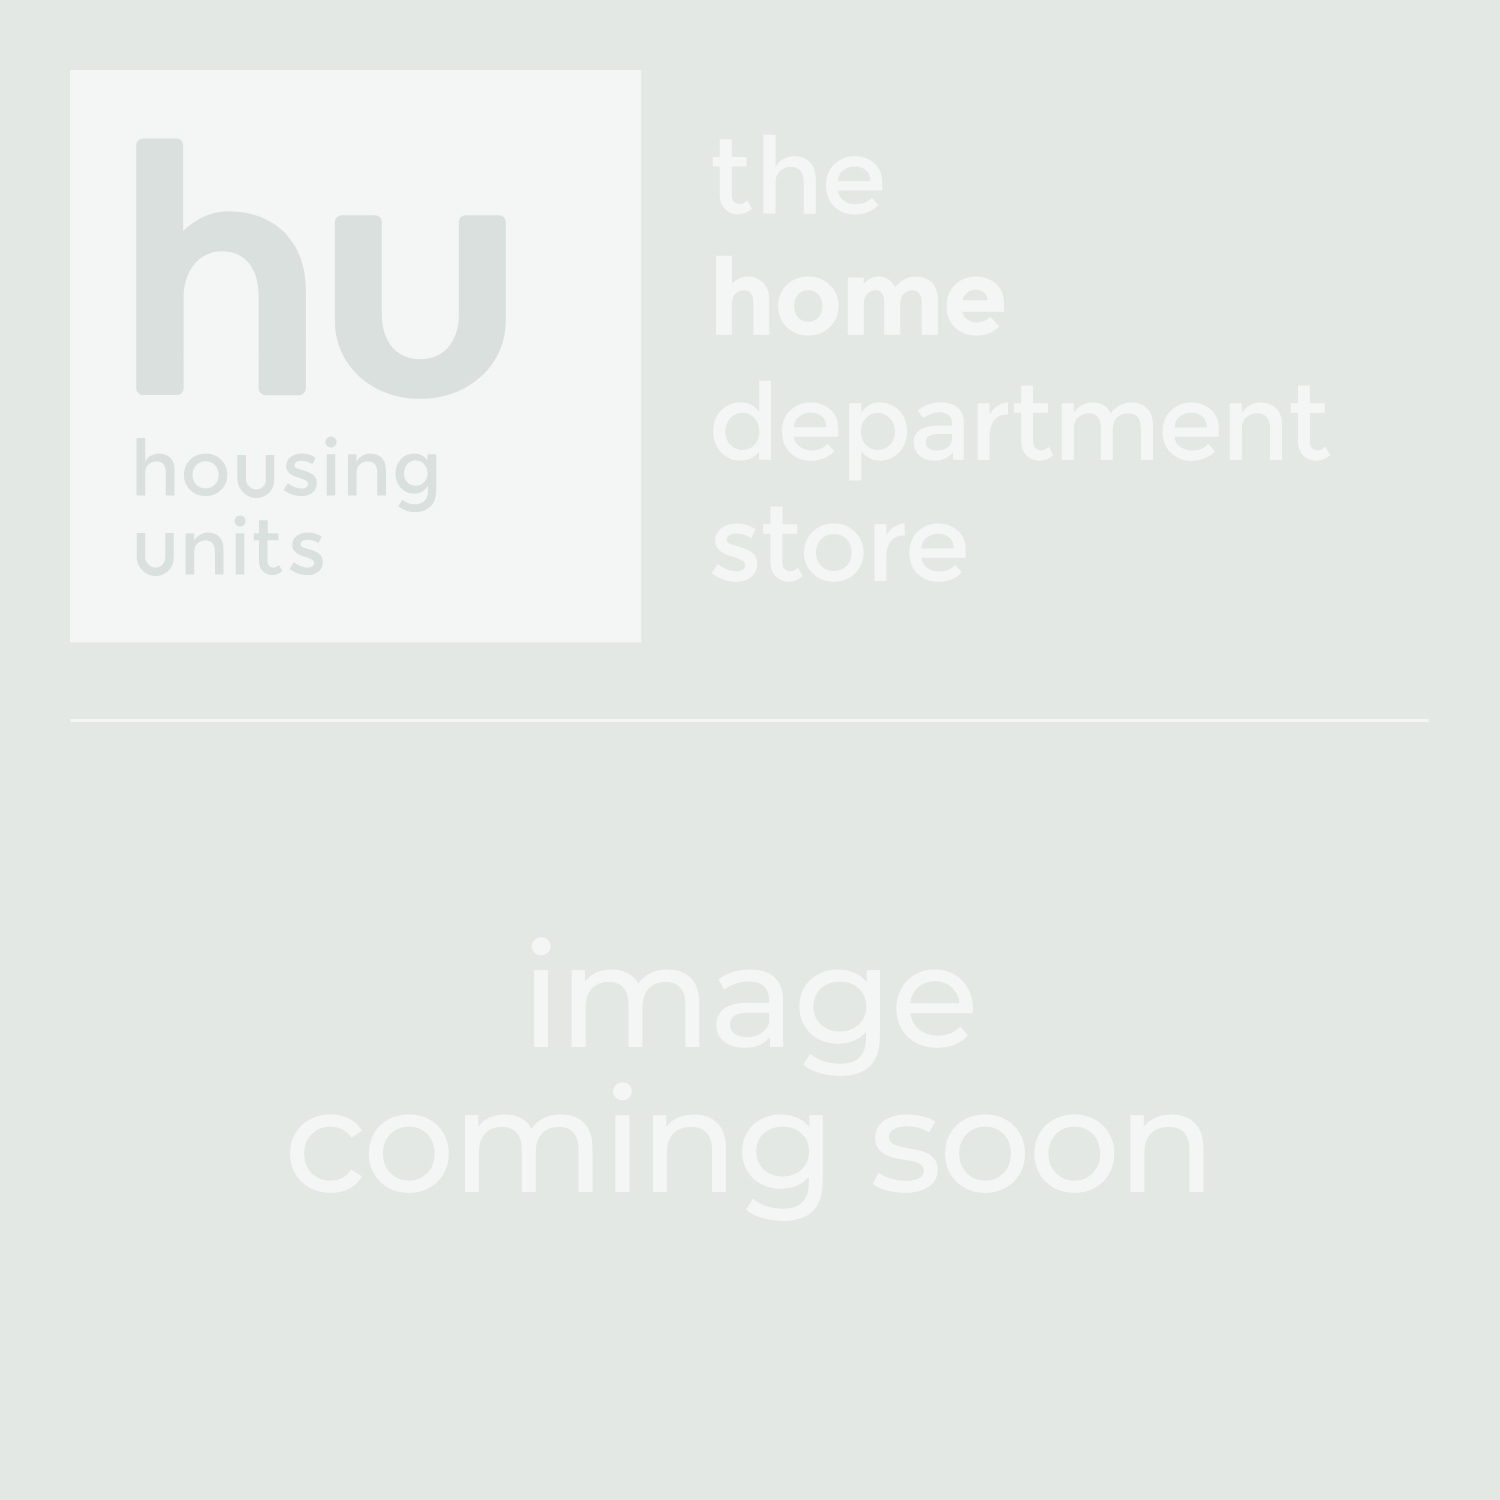 DRU Virtuo 80/3 Electric Fire - Lifestyle | Housing Units